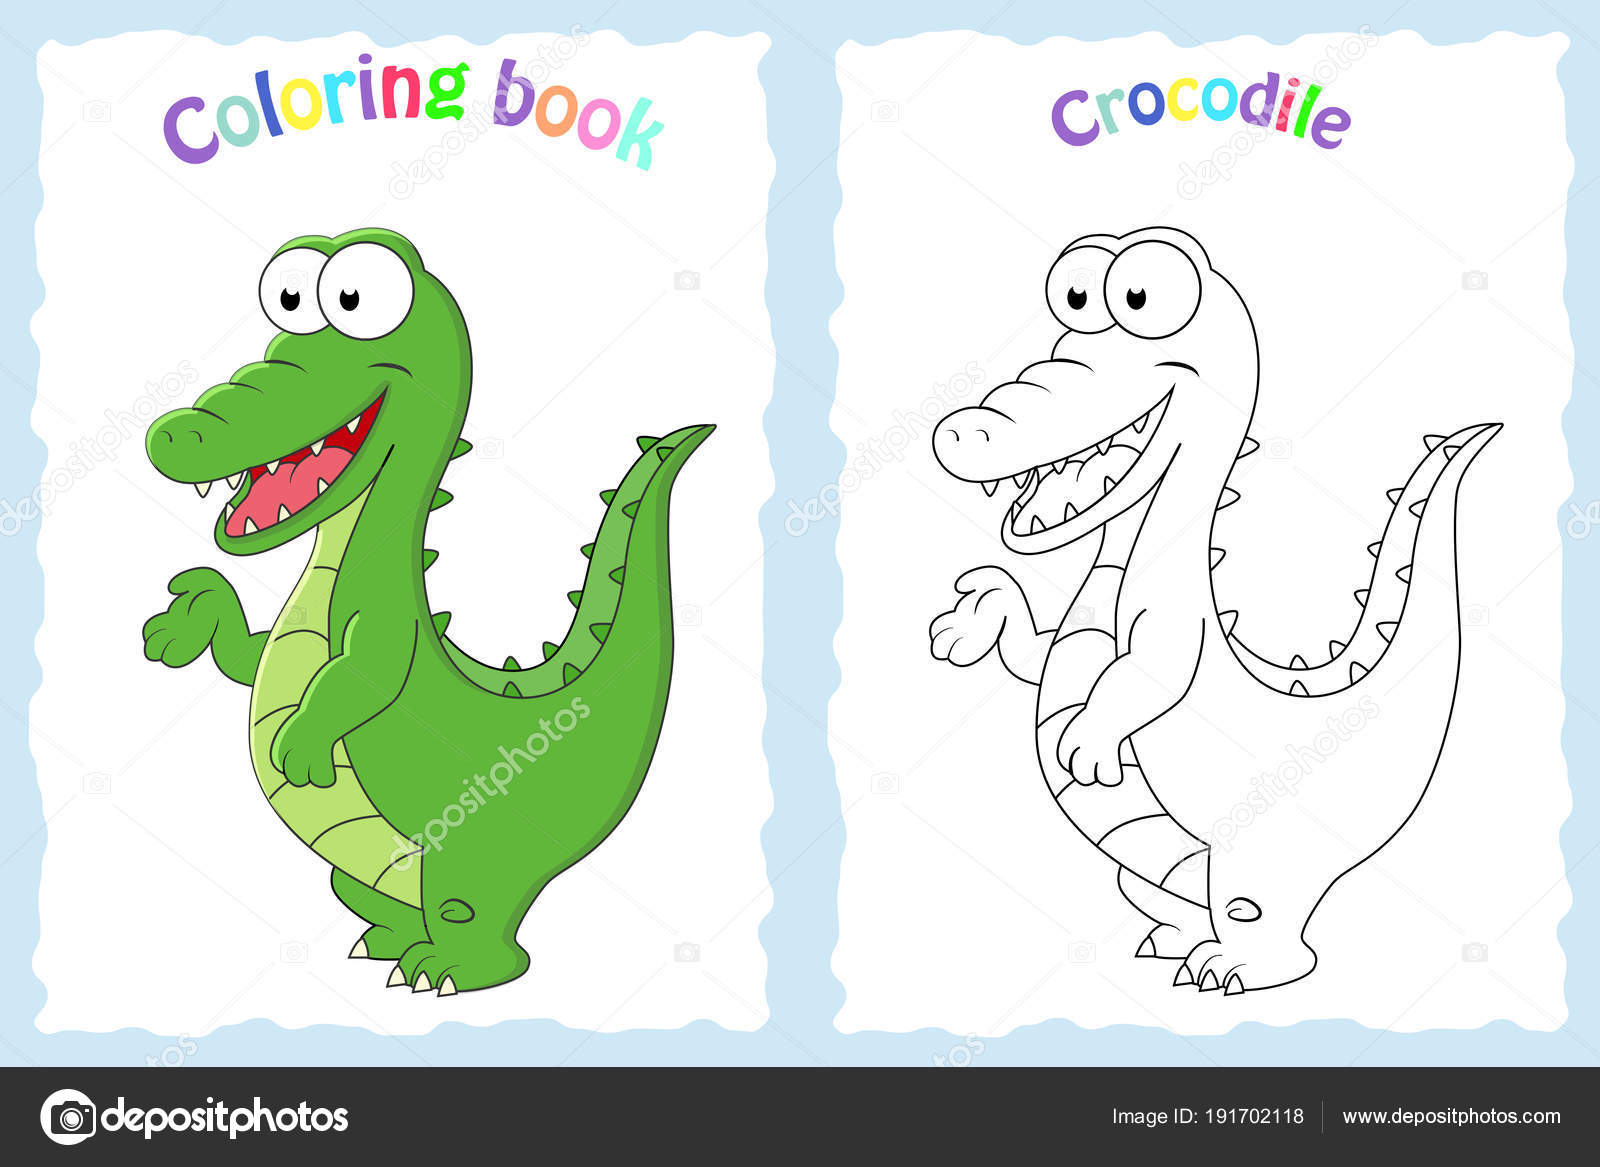 Coloring book page for preschool children with colorful crocodil ...